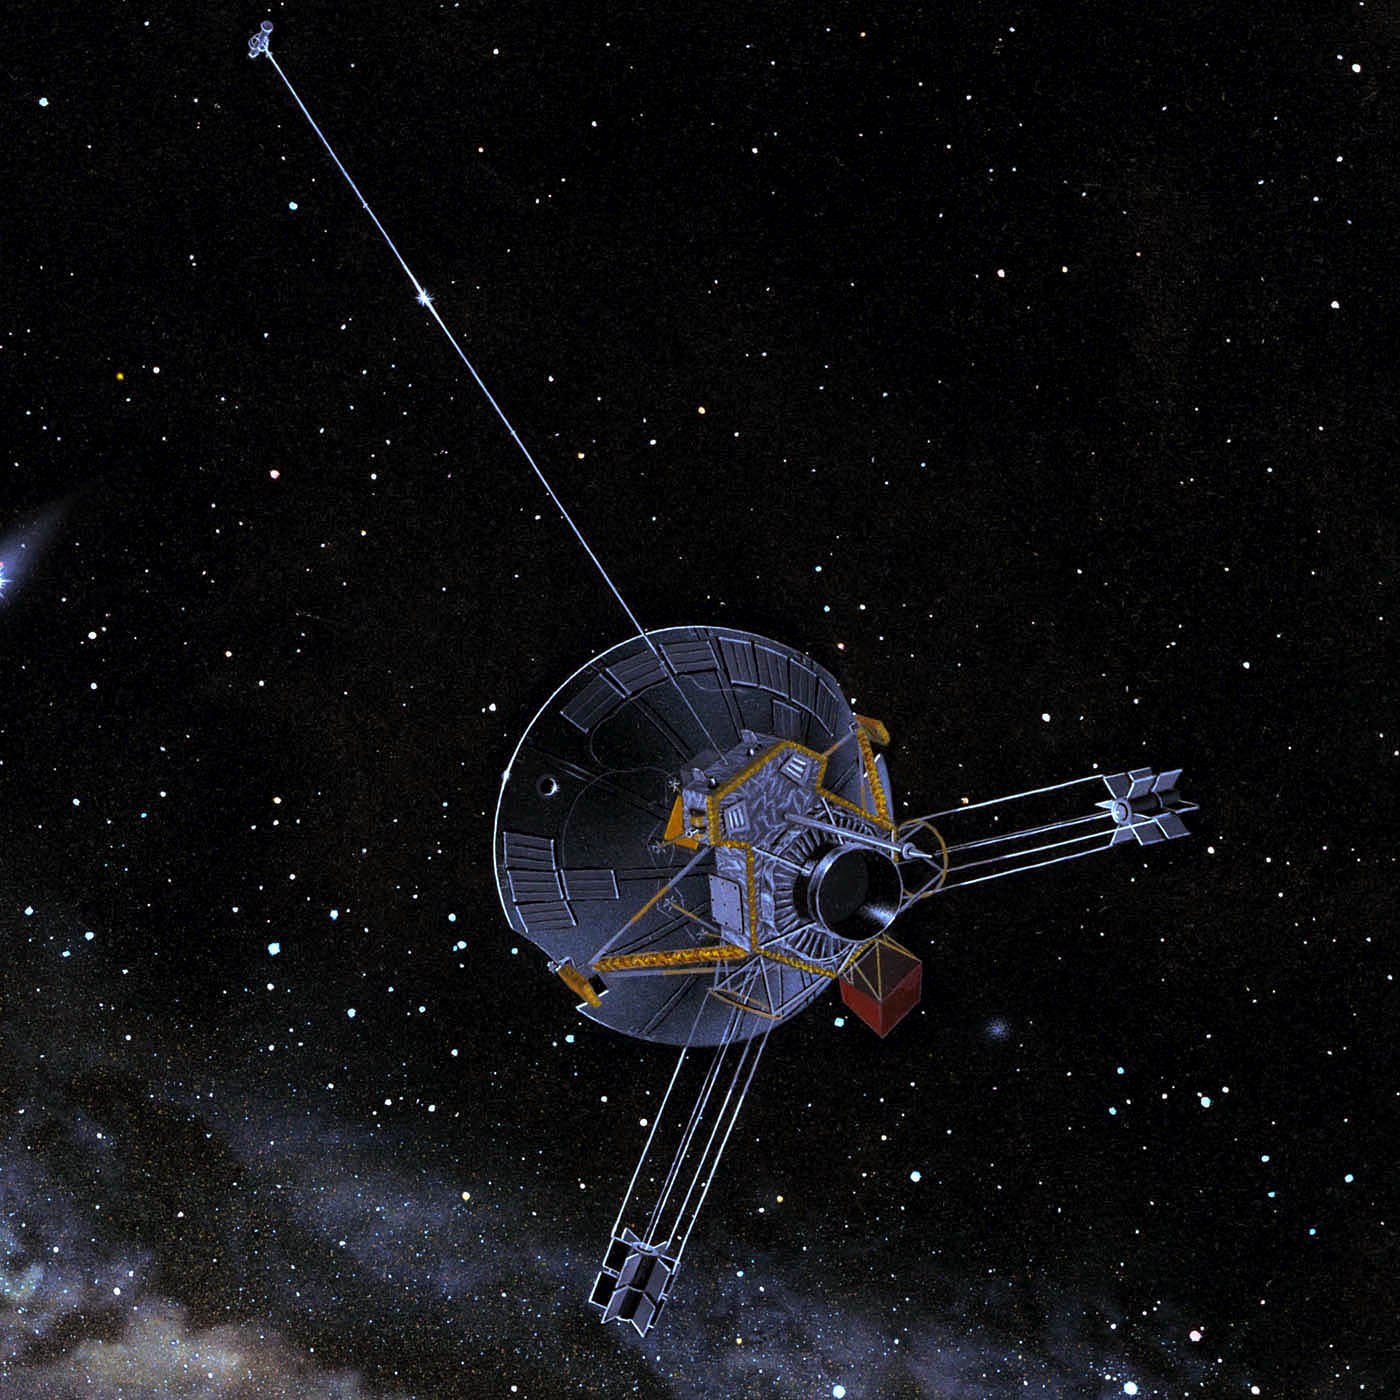 wind mission probe space - photo #22